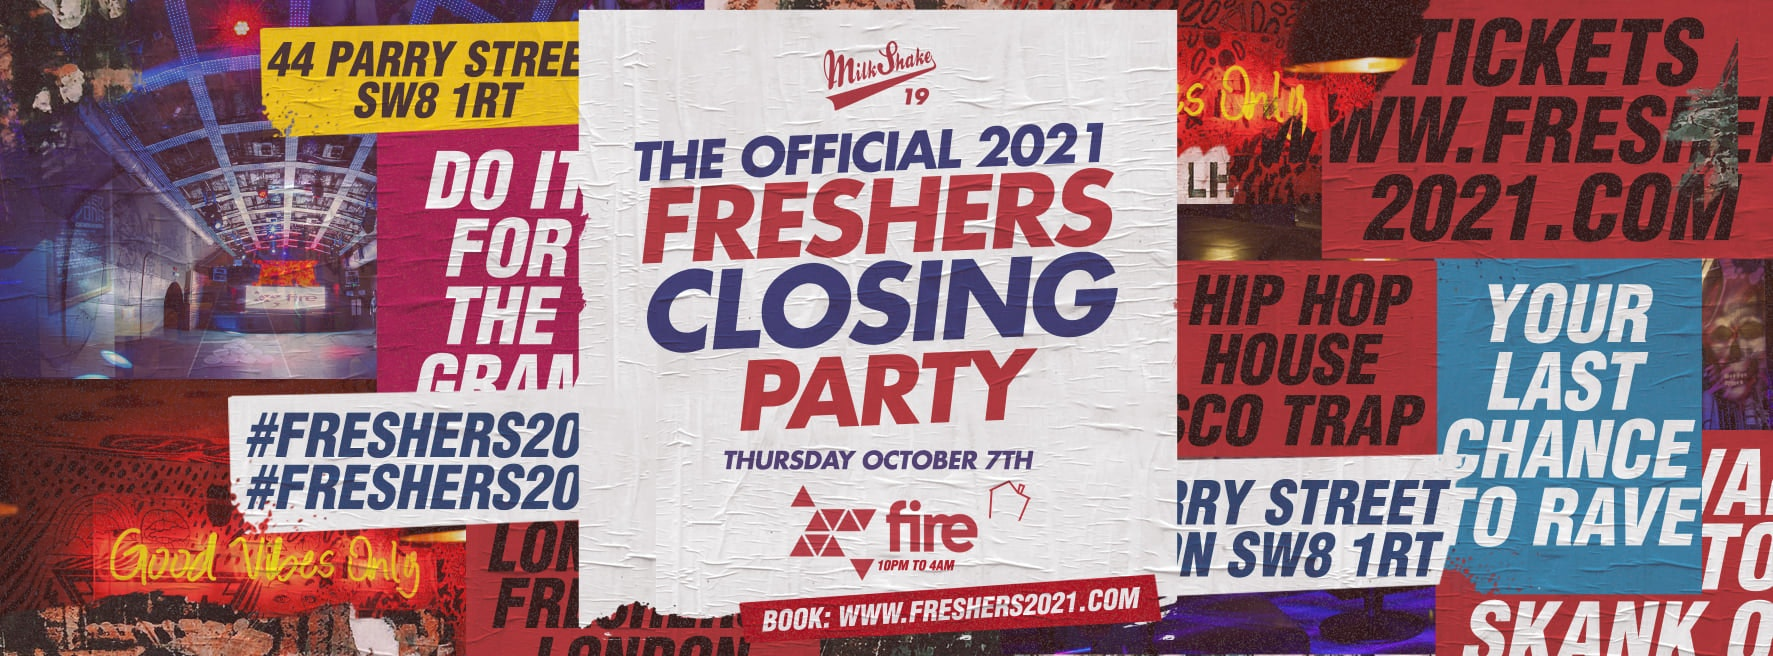 THE OFFICIAL FRESHERS 2021 CLOSING PARTY 💊 Fire Club London 😲